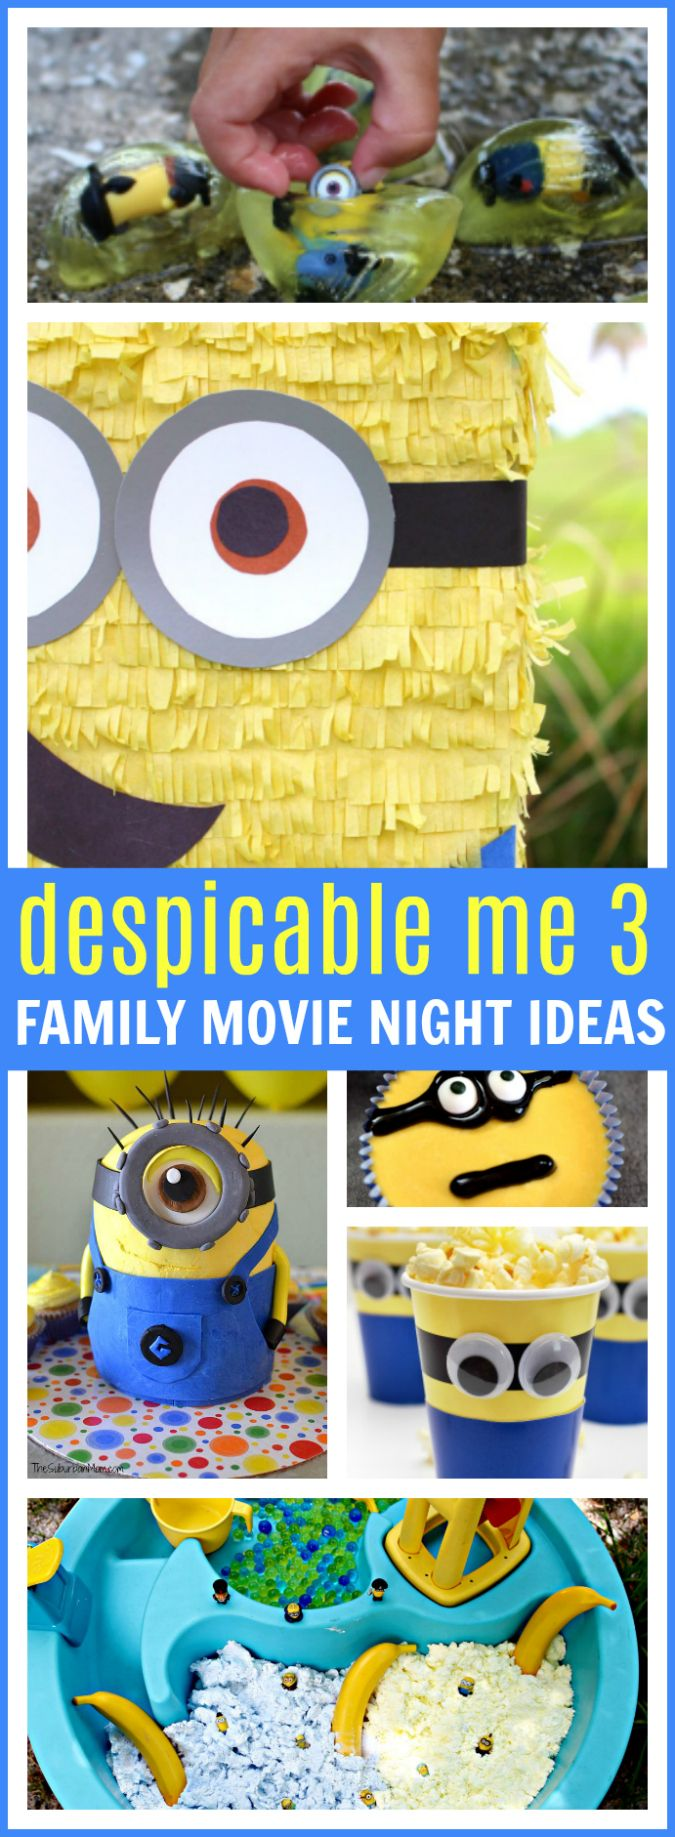 Celebrate Despicable Me 3 Special Edition At Home Release + Family Movie Night Ideas - Raising Whasians via @raisingwhasians (AD) #DespicableMe3 #DM3Family